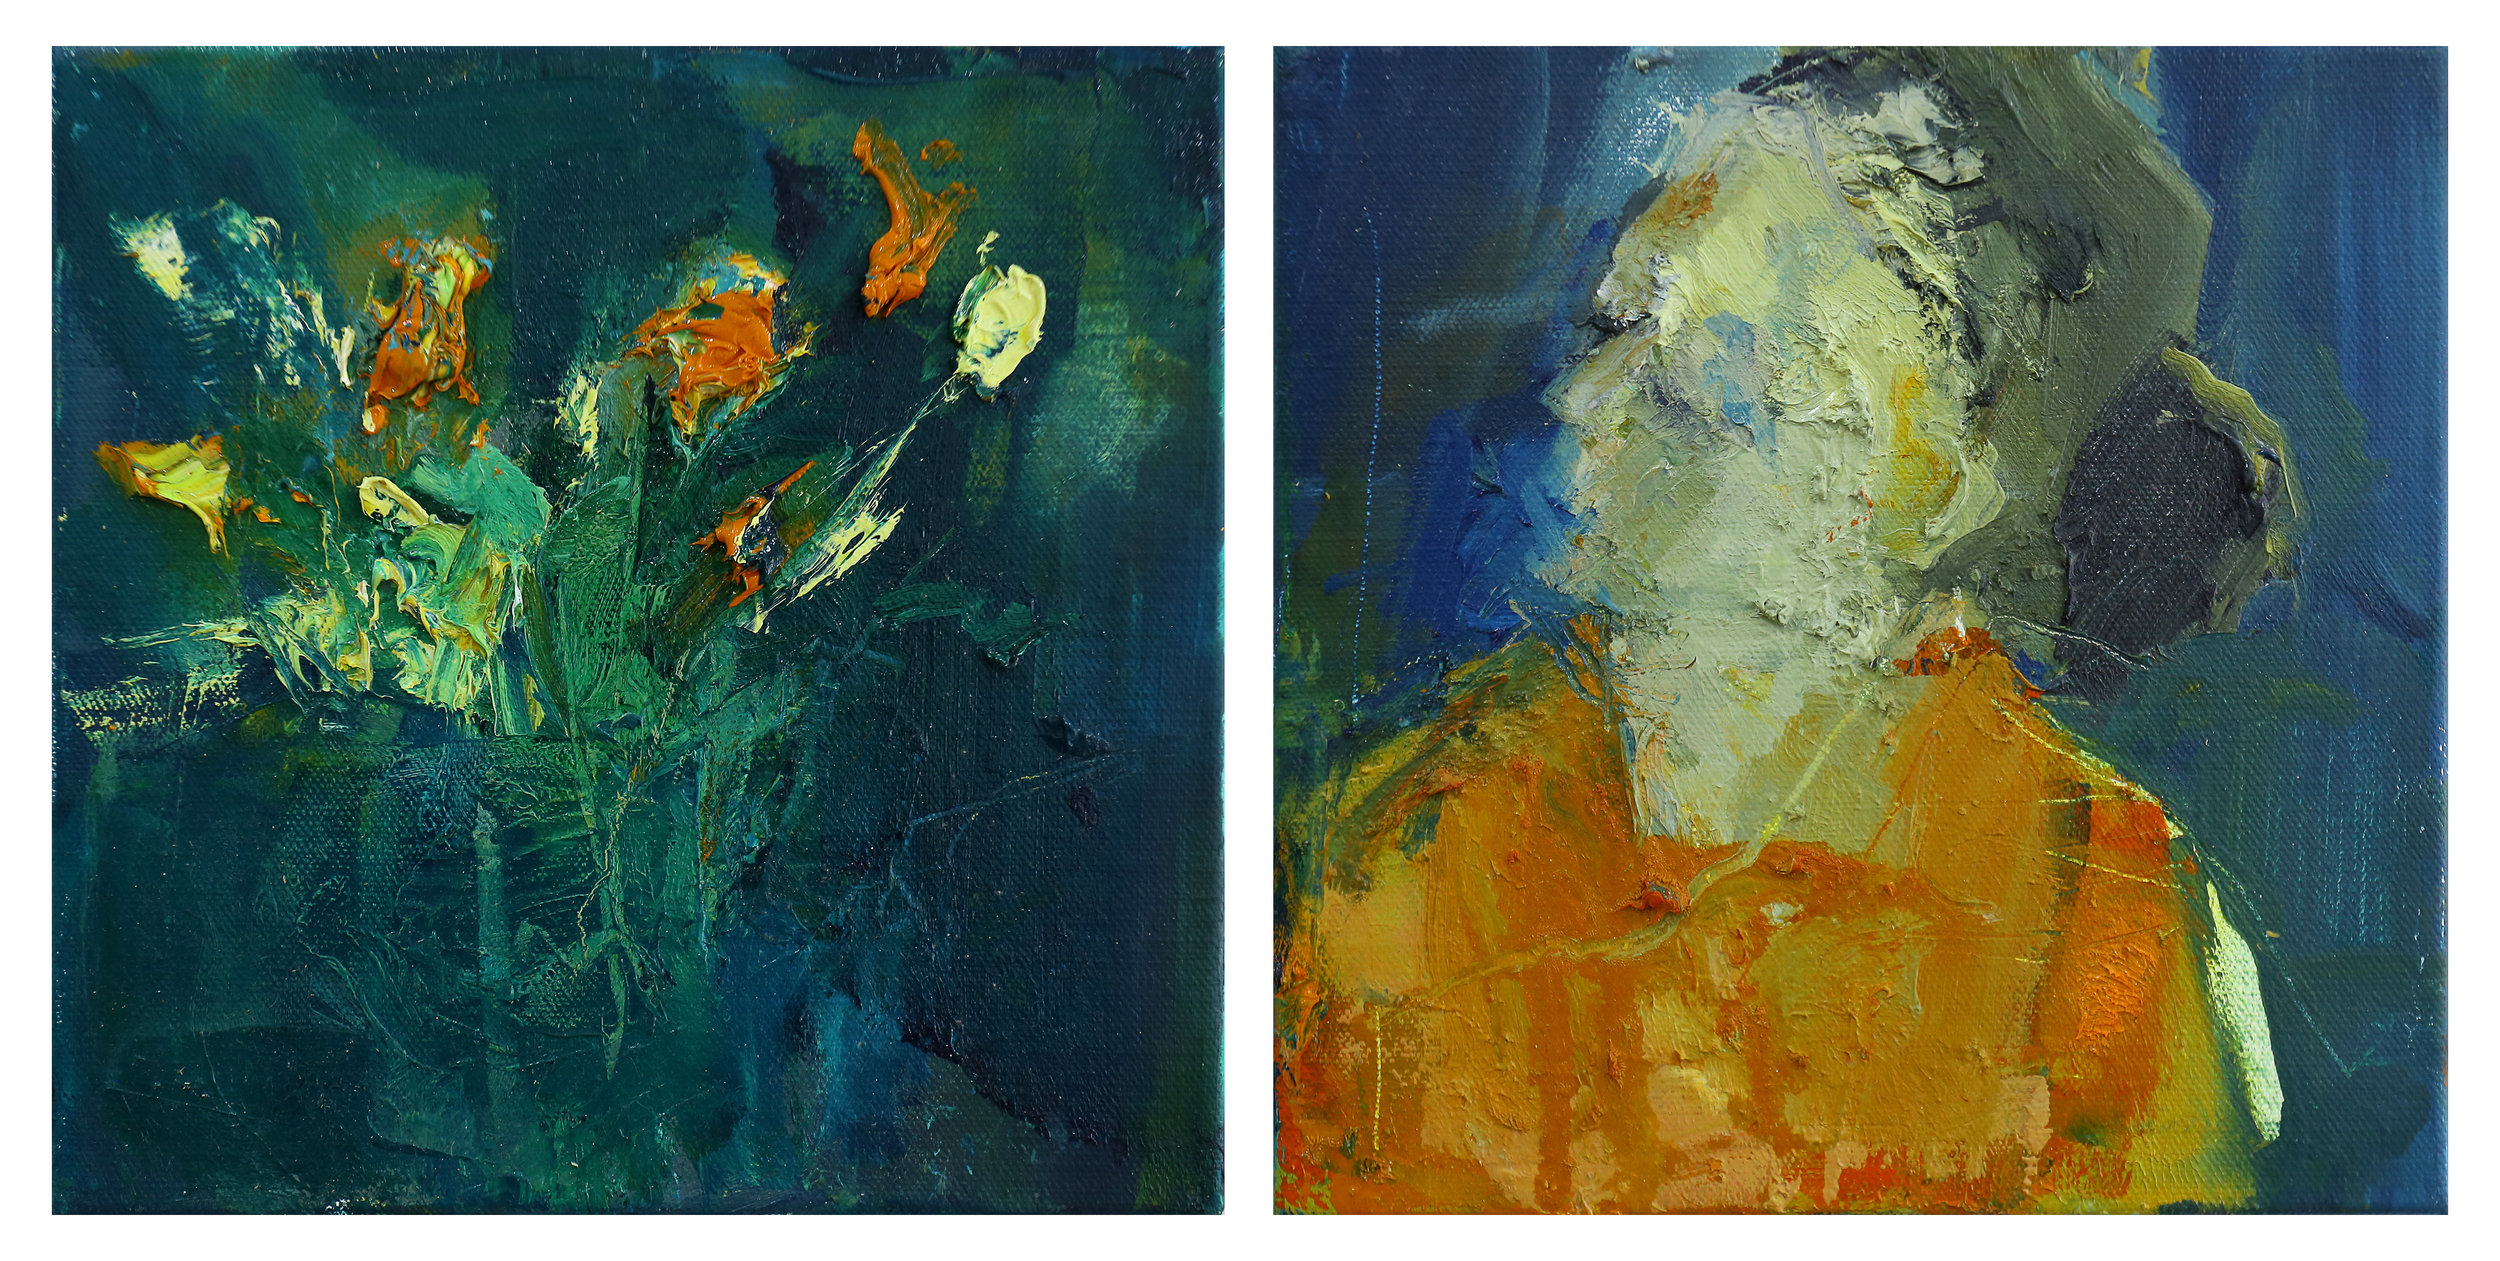 In Bloom My Heart - Oil on Linen (Diptych) 30 x 60 cm